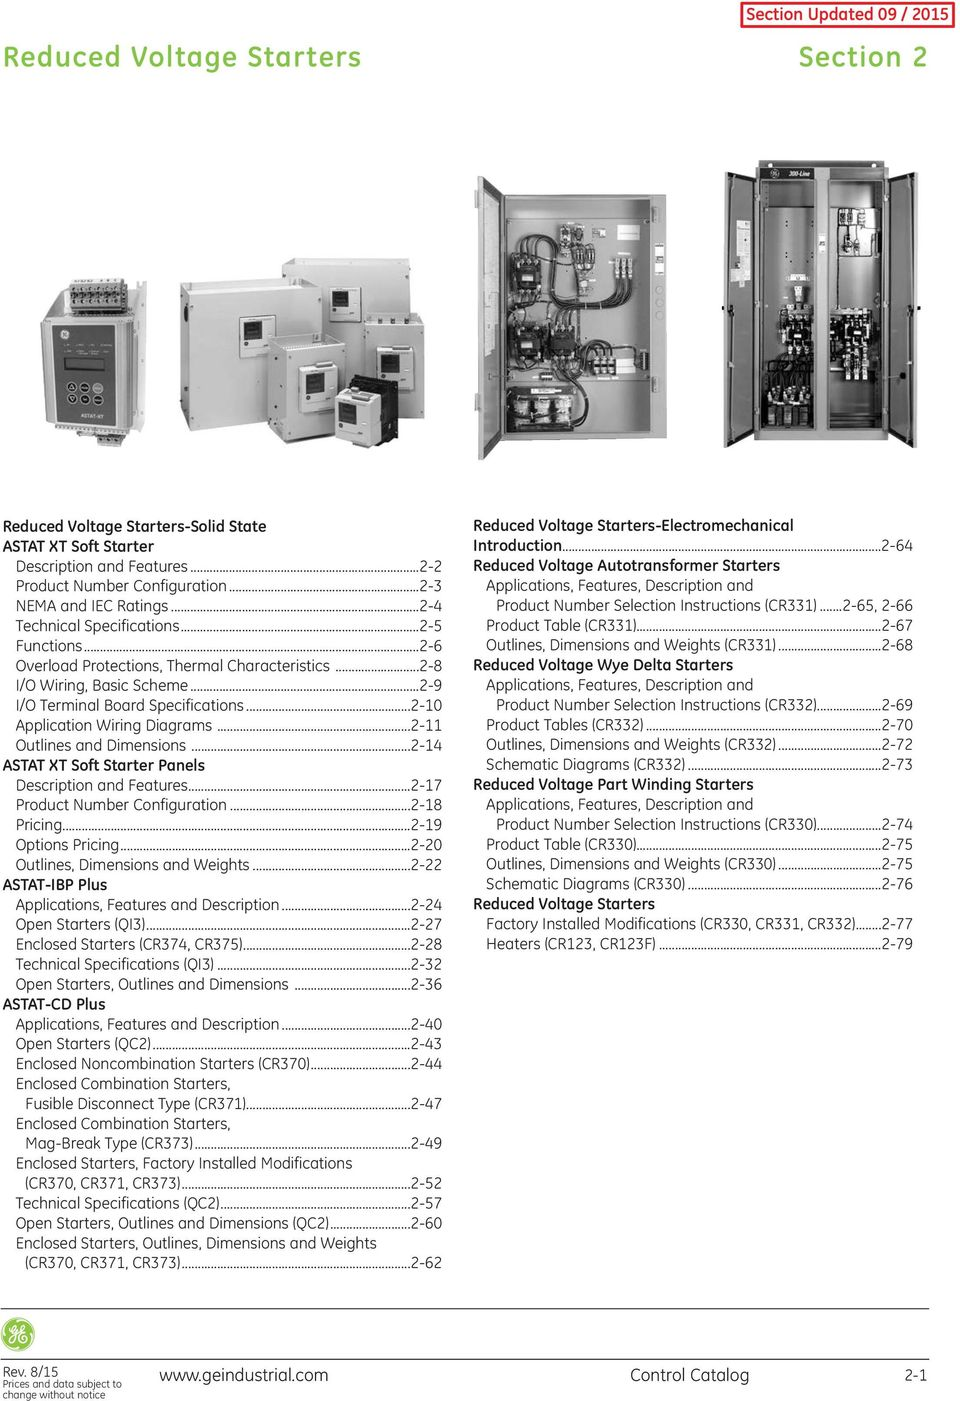 ..2-14 ASTAT XT Soft Starter Panels Description and Features...2-17 Product Number Configuration...2-18 Pricing...2-19 Options Pricing...2-20 Outlines, Dimensions and Weights.